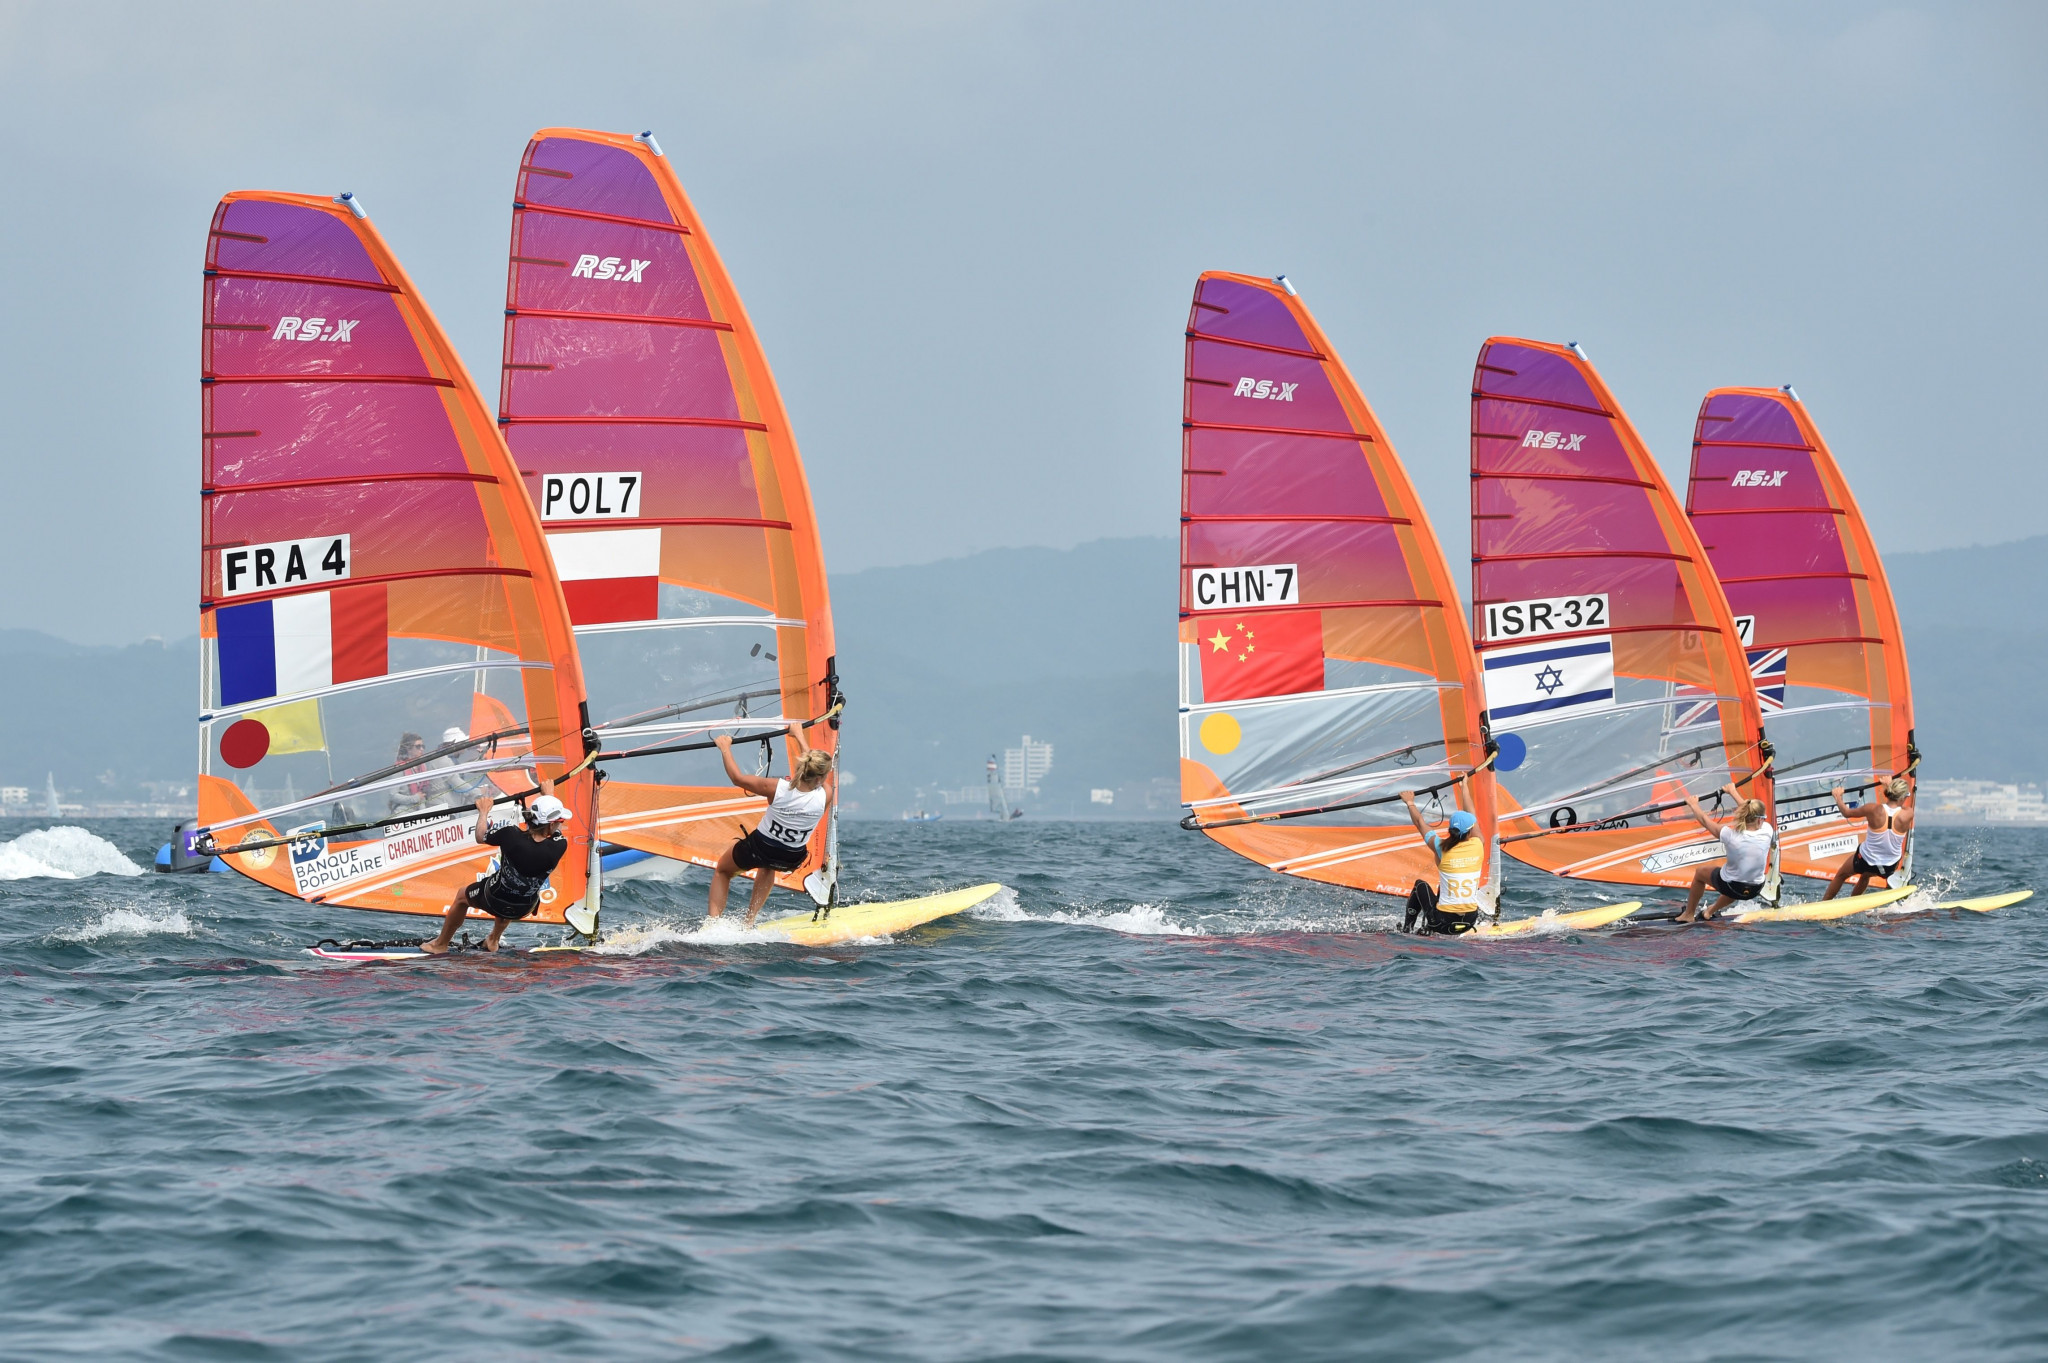 The RS:X is set to be dislodged as the equipment for Olympic windsurfing events ©Getty Images